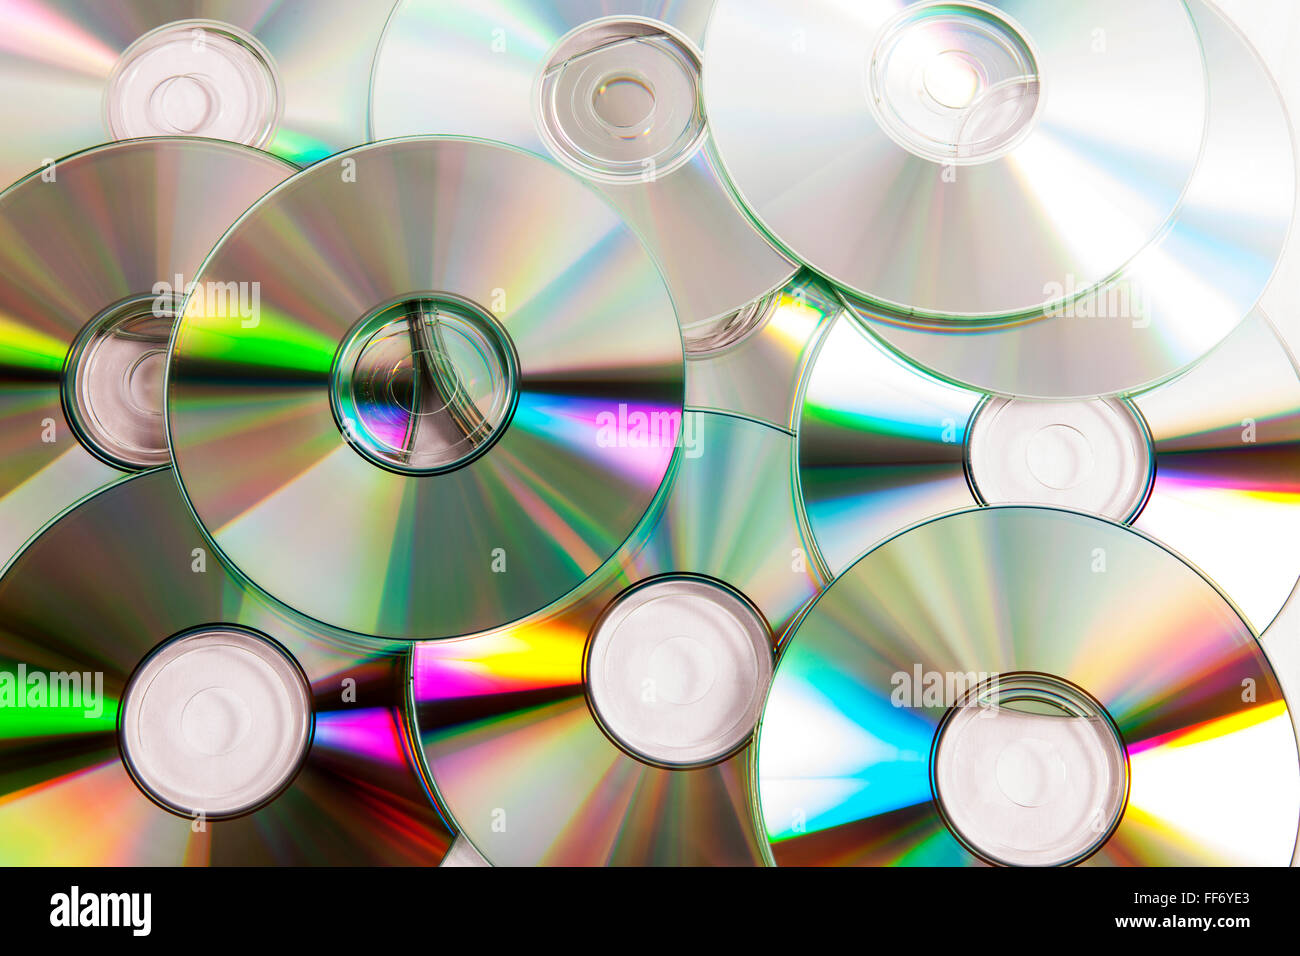 Cd CDs dvd dvds digitale Daten Speicher Piraterie Disk full-Frame ...